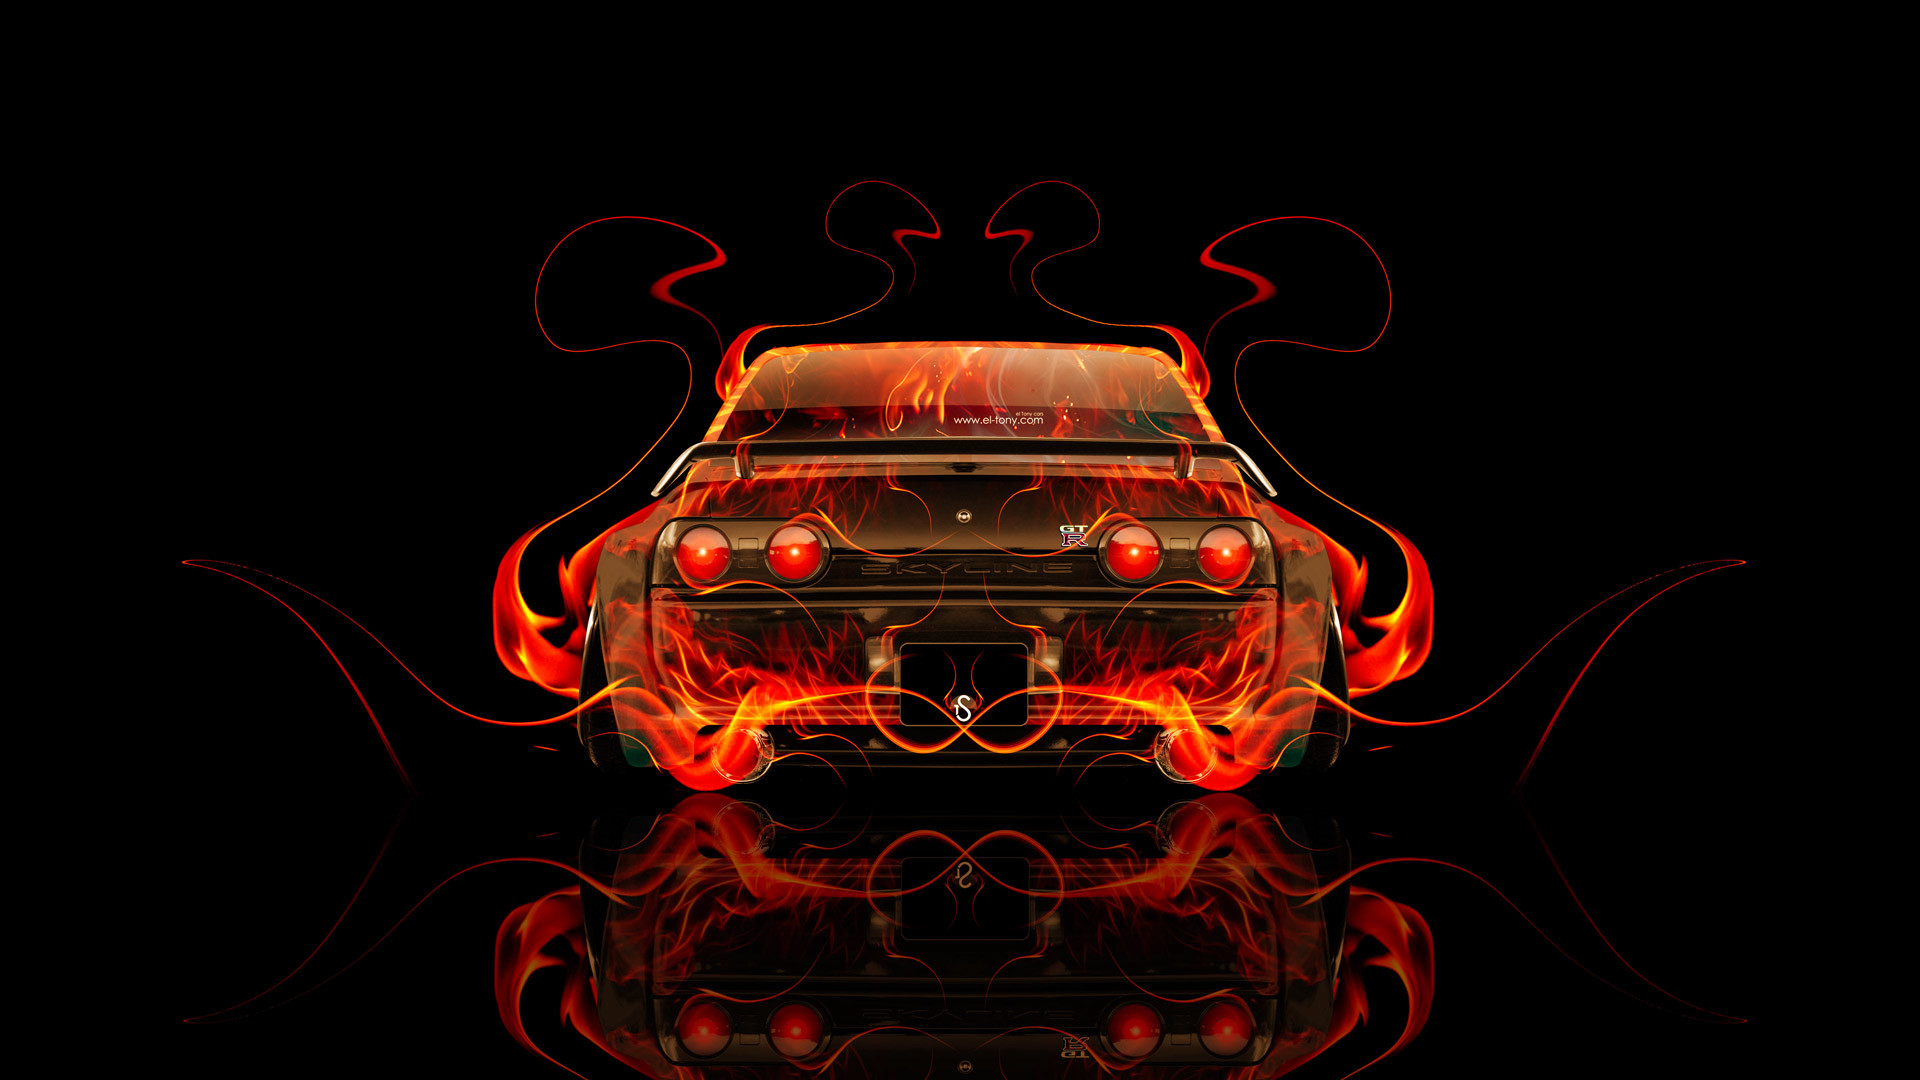 … Nissan Skyline GTR R32 JDM Tuning Back Fire Car 2014